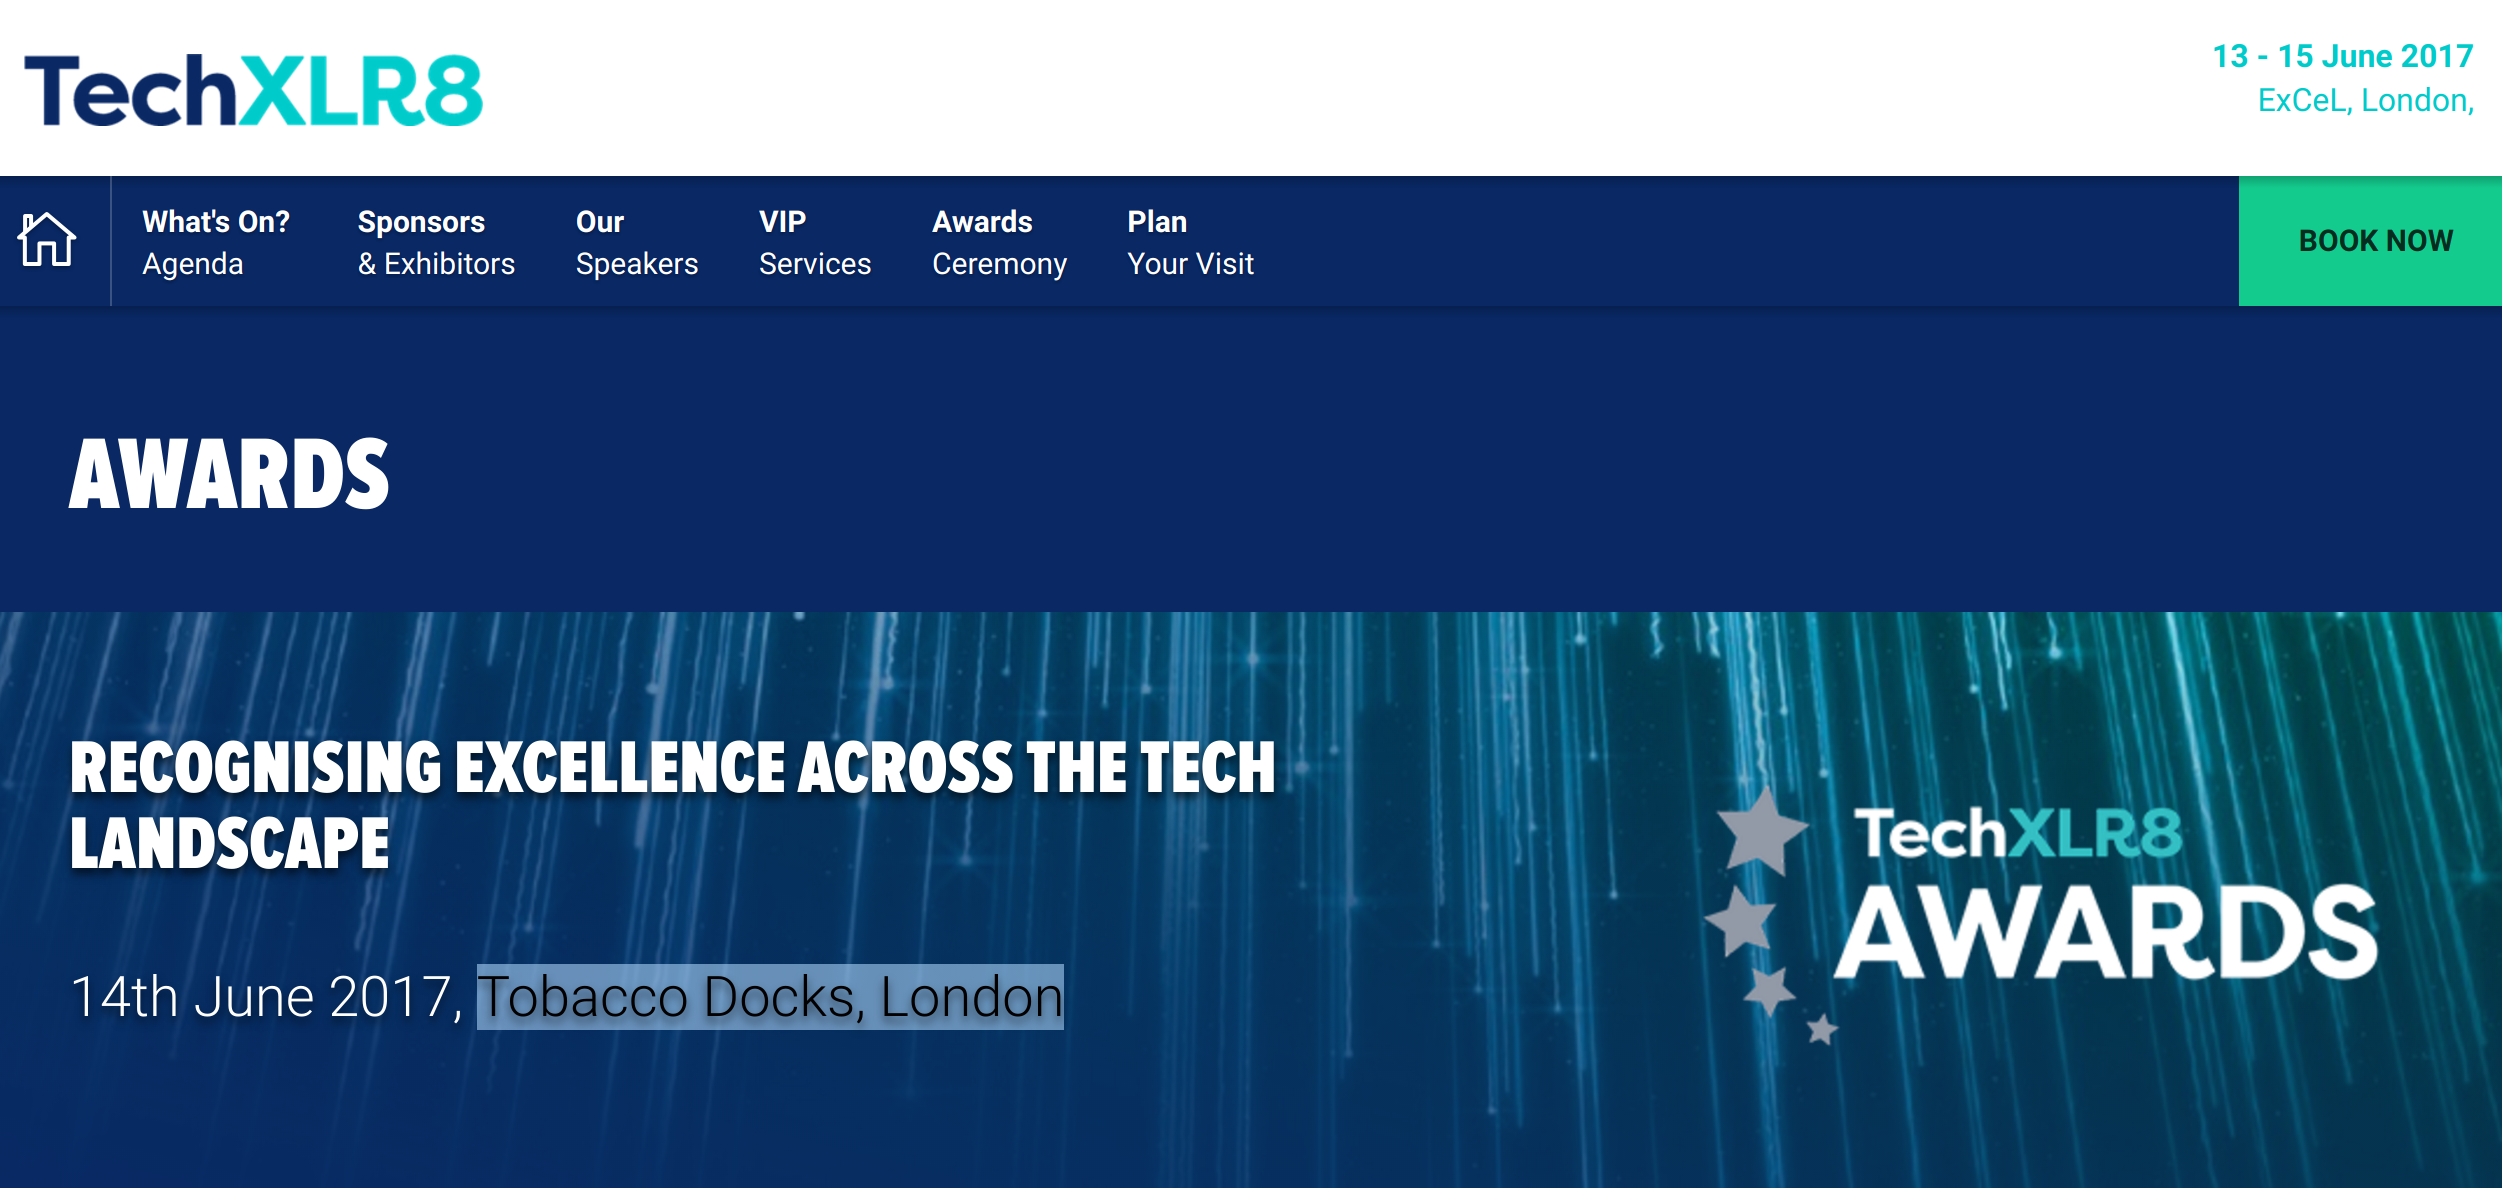 Webpage for TechXLR8 Awards